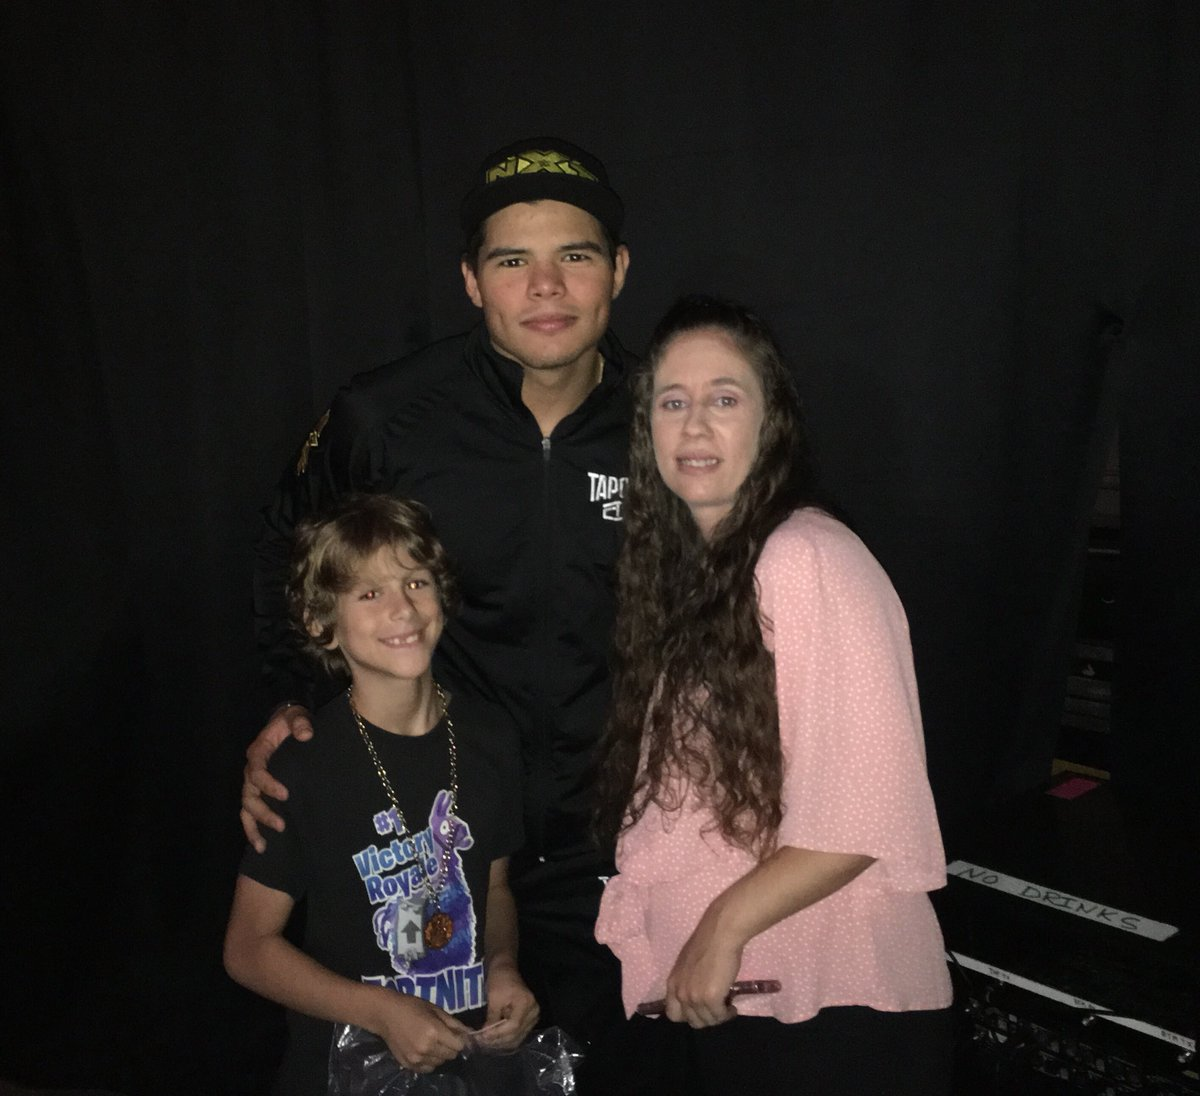 Congrats to our #NXTStPetersburg Fan of the Night @latashahoberg35 who got to meet #205Live Superstar @humberto_wwe!